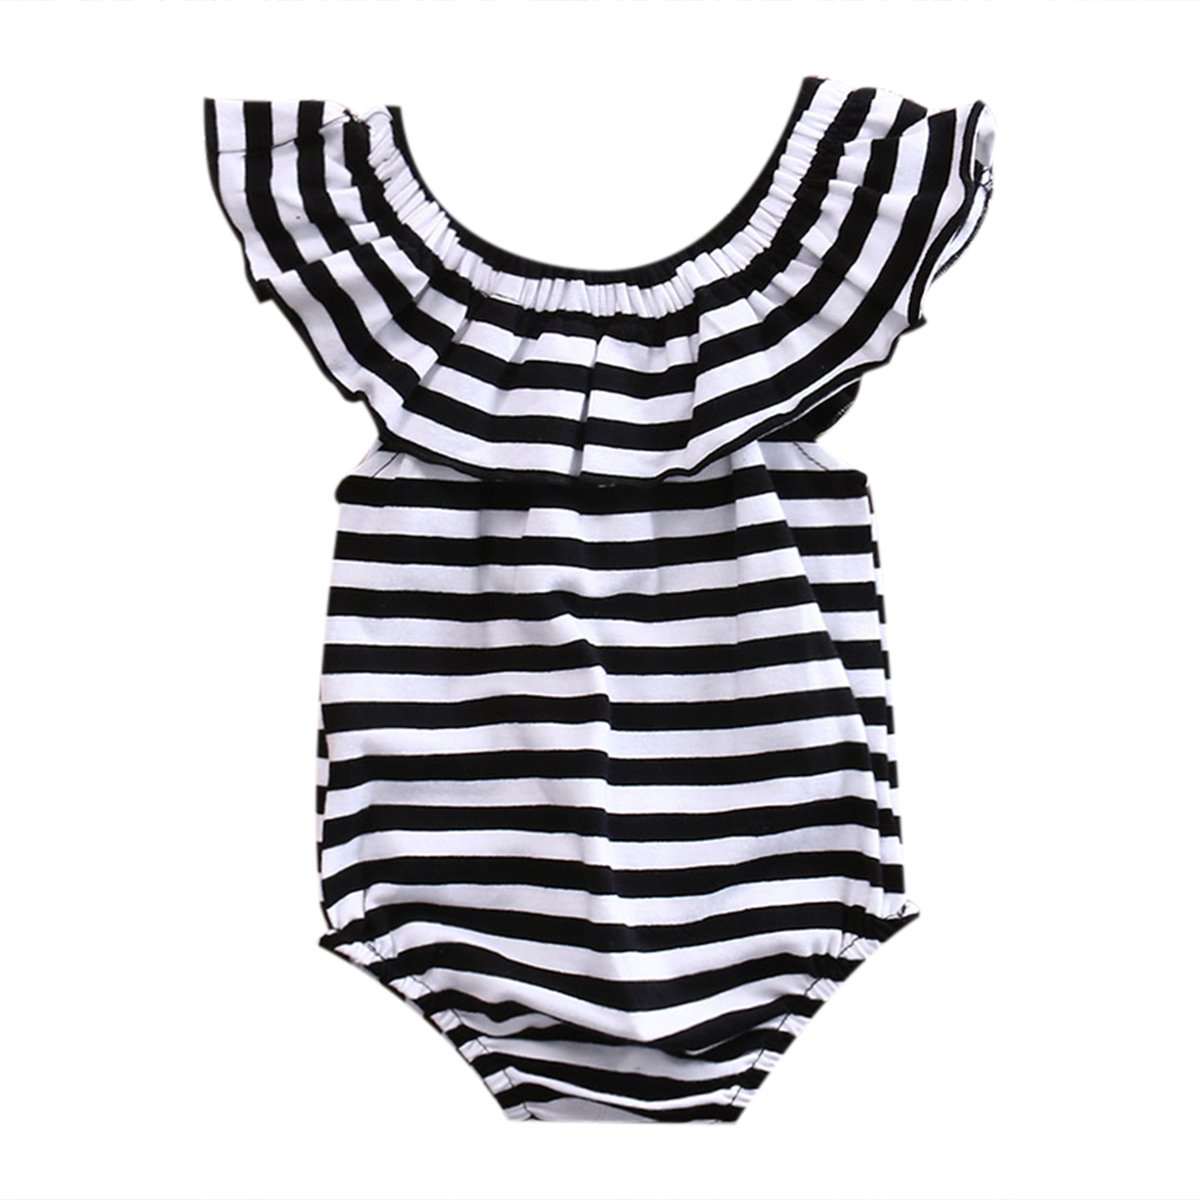 Newborn Toddler Baby Girls Jumpsuit Romper Bodysuit Cotton Outfits Clothes 0-24M